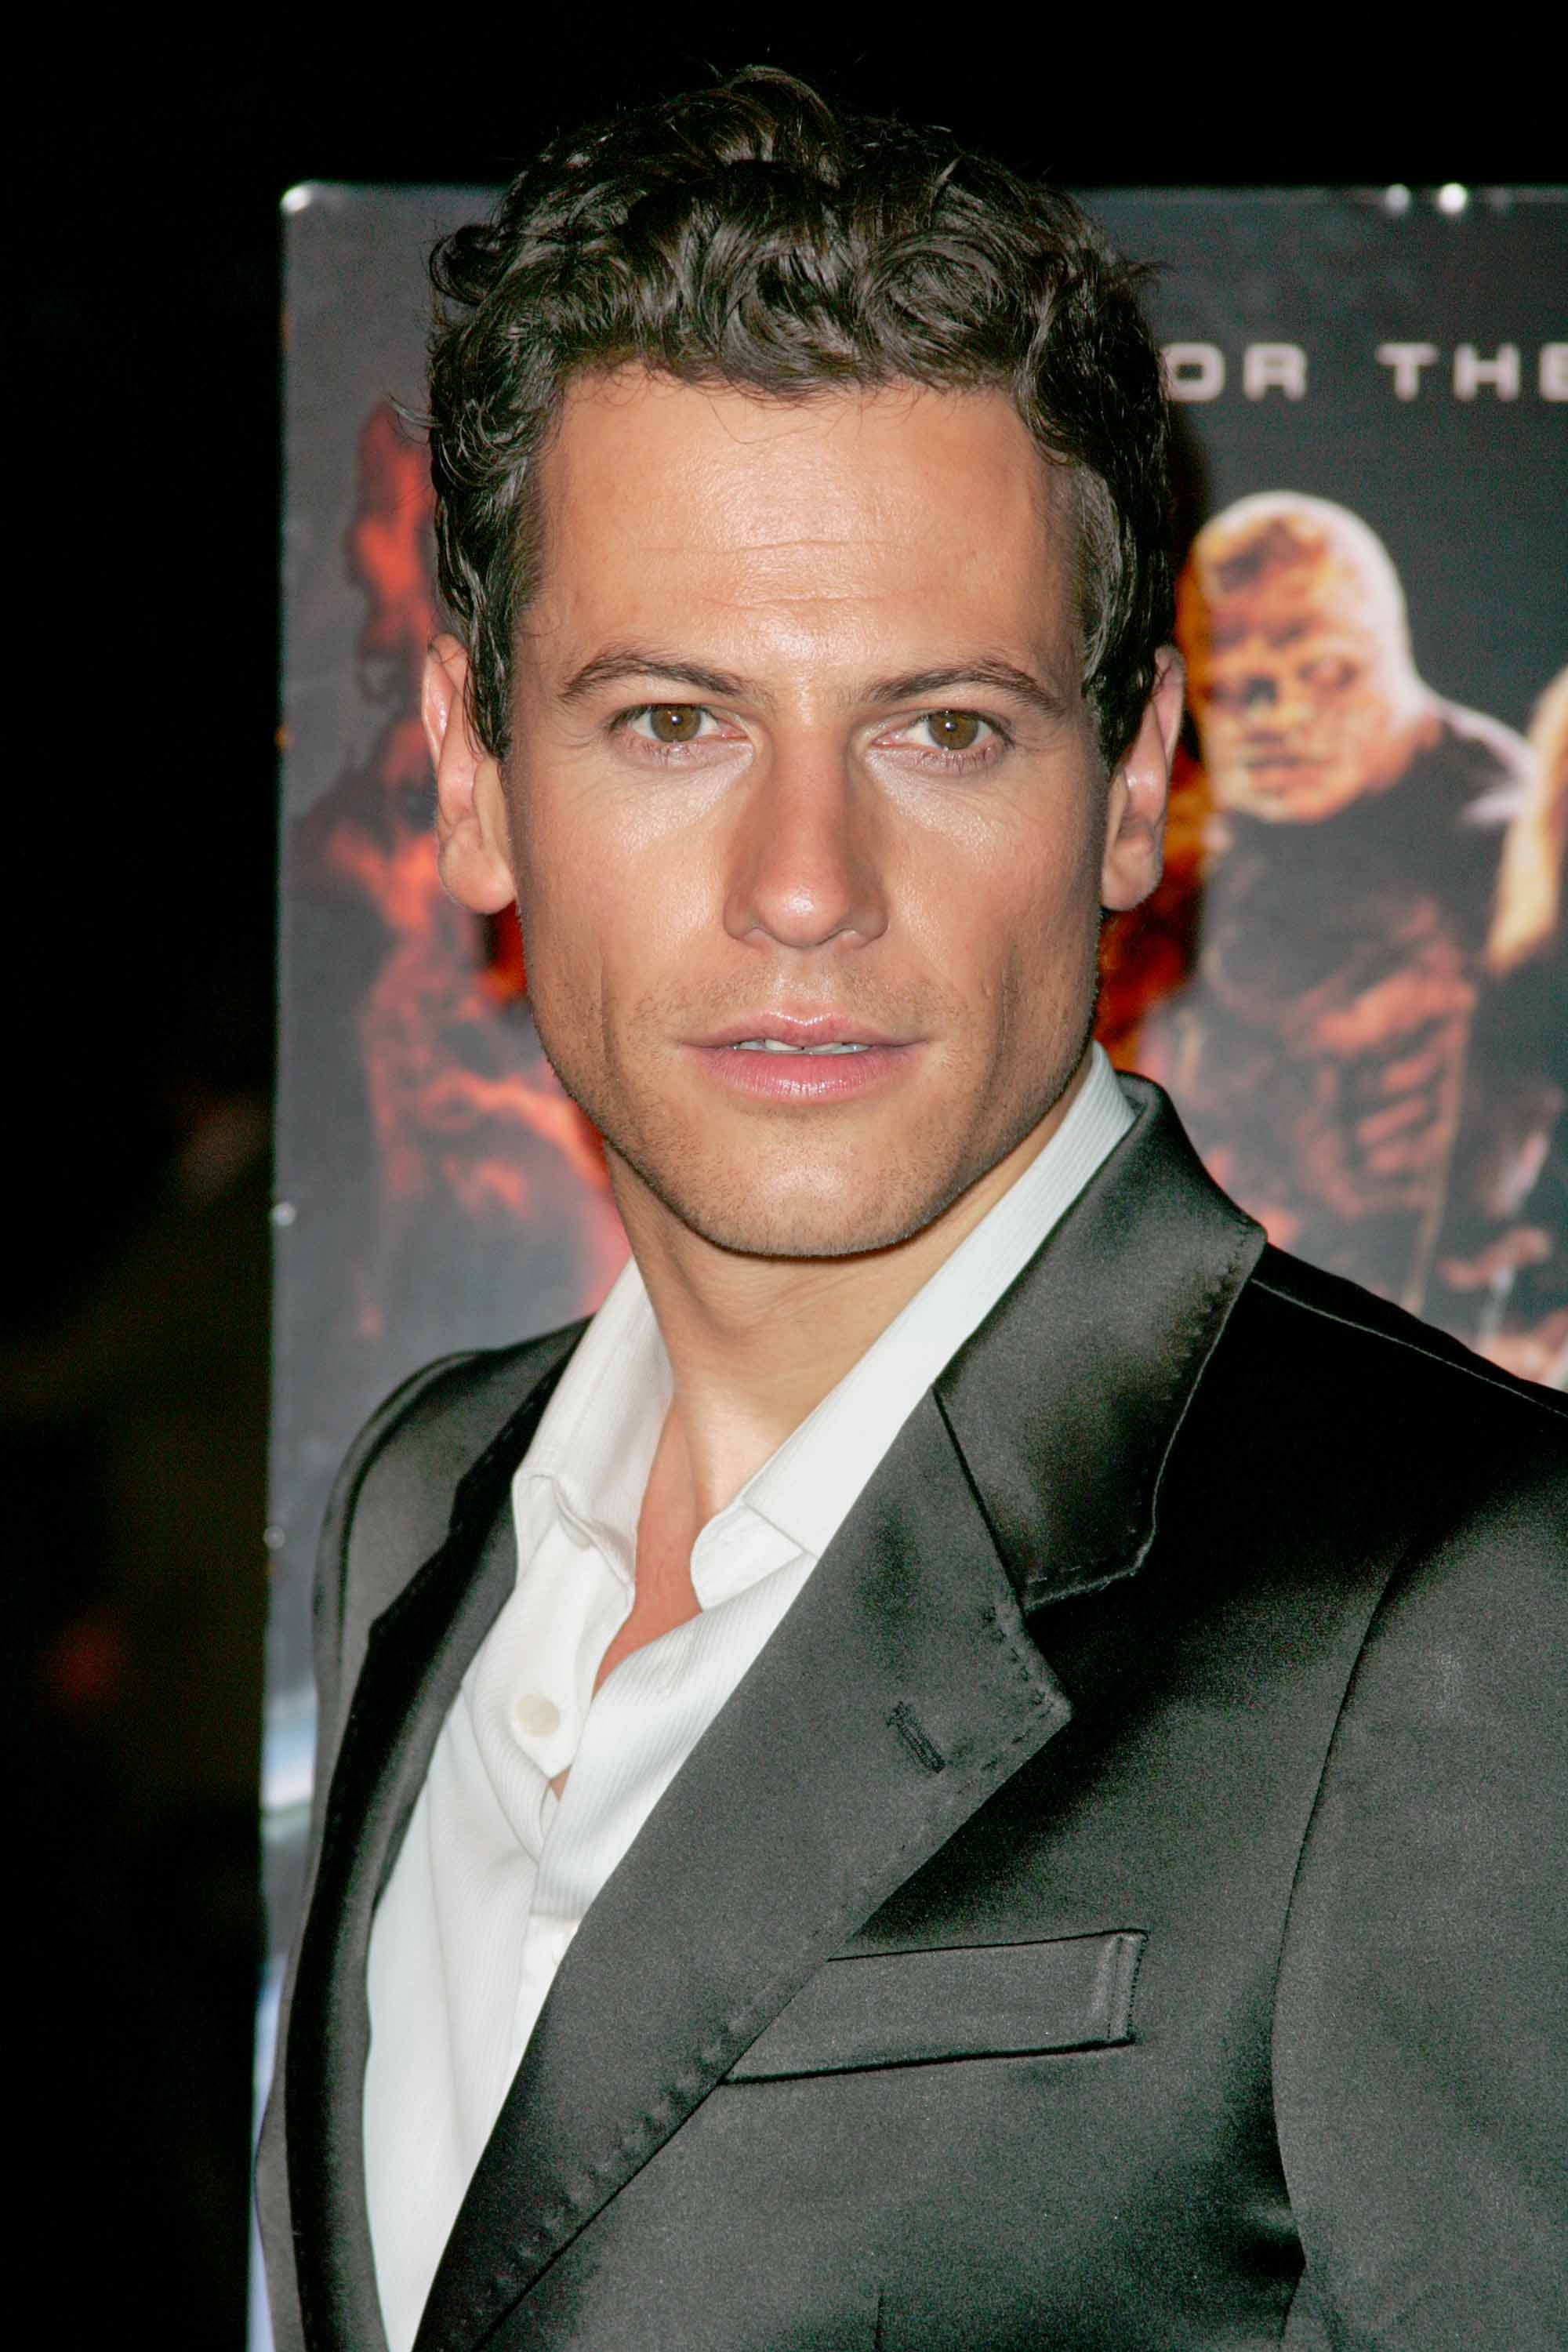 The 44-year old son of father Peter Gruffudd and mother Gillian Gruffudd, 180 cm tall Ioan Gruffudd in 2017 photo